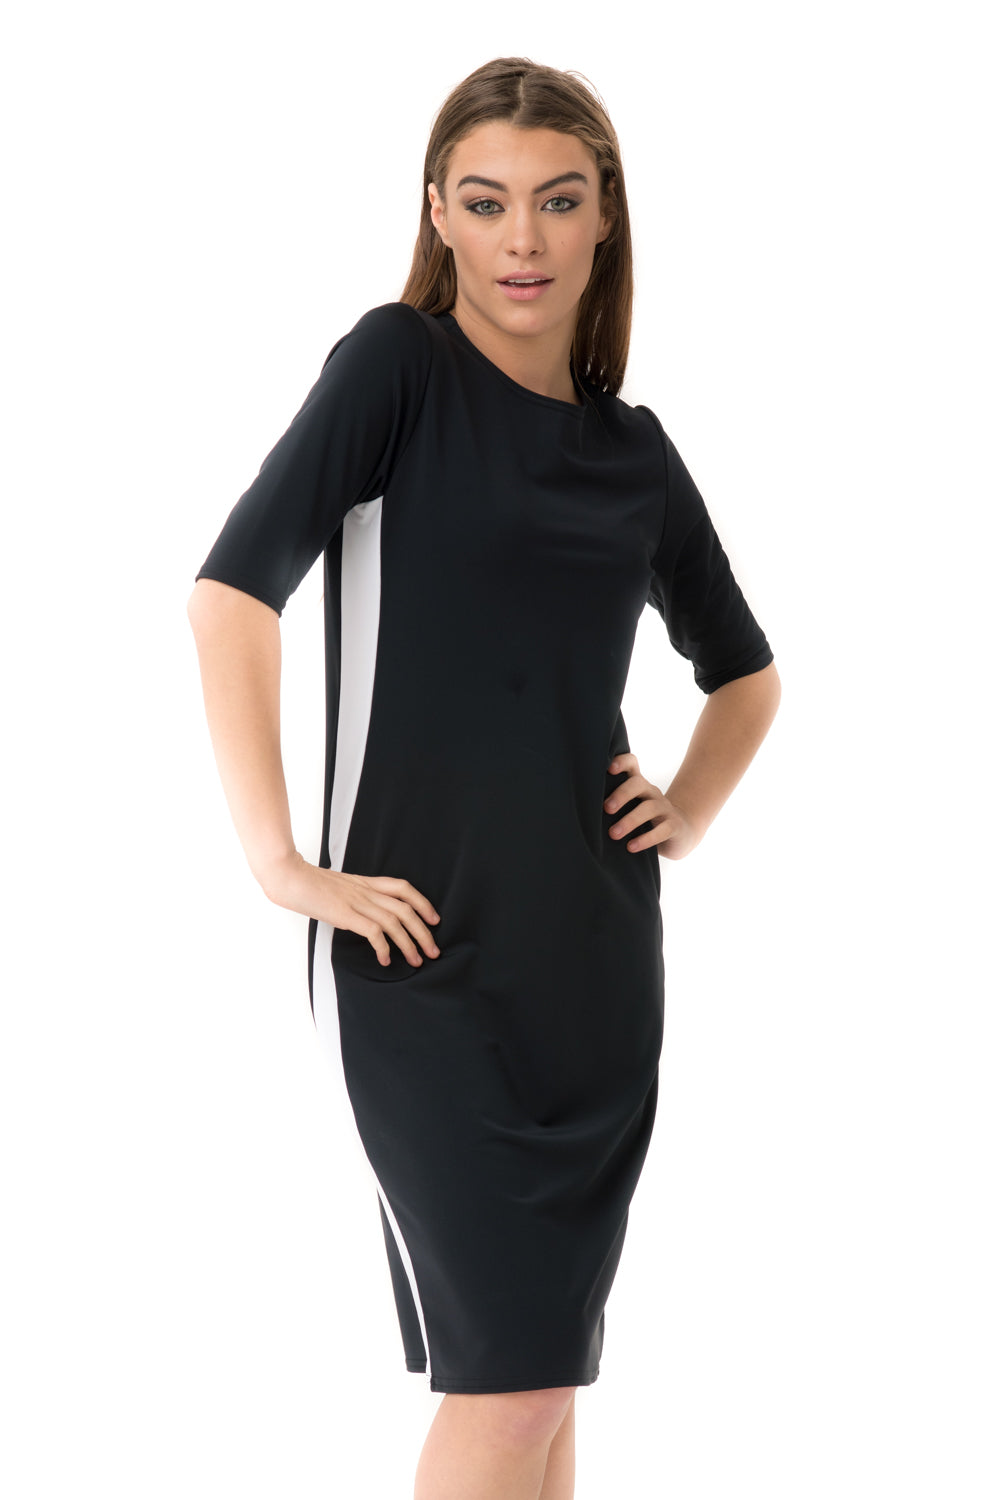 Black Racer Swim Dress